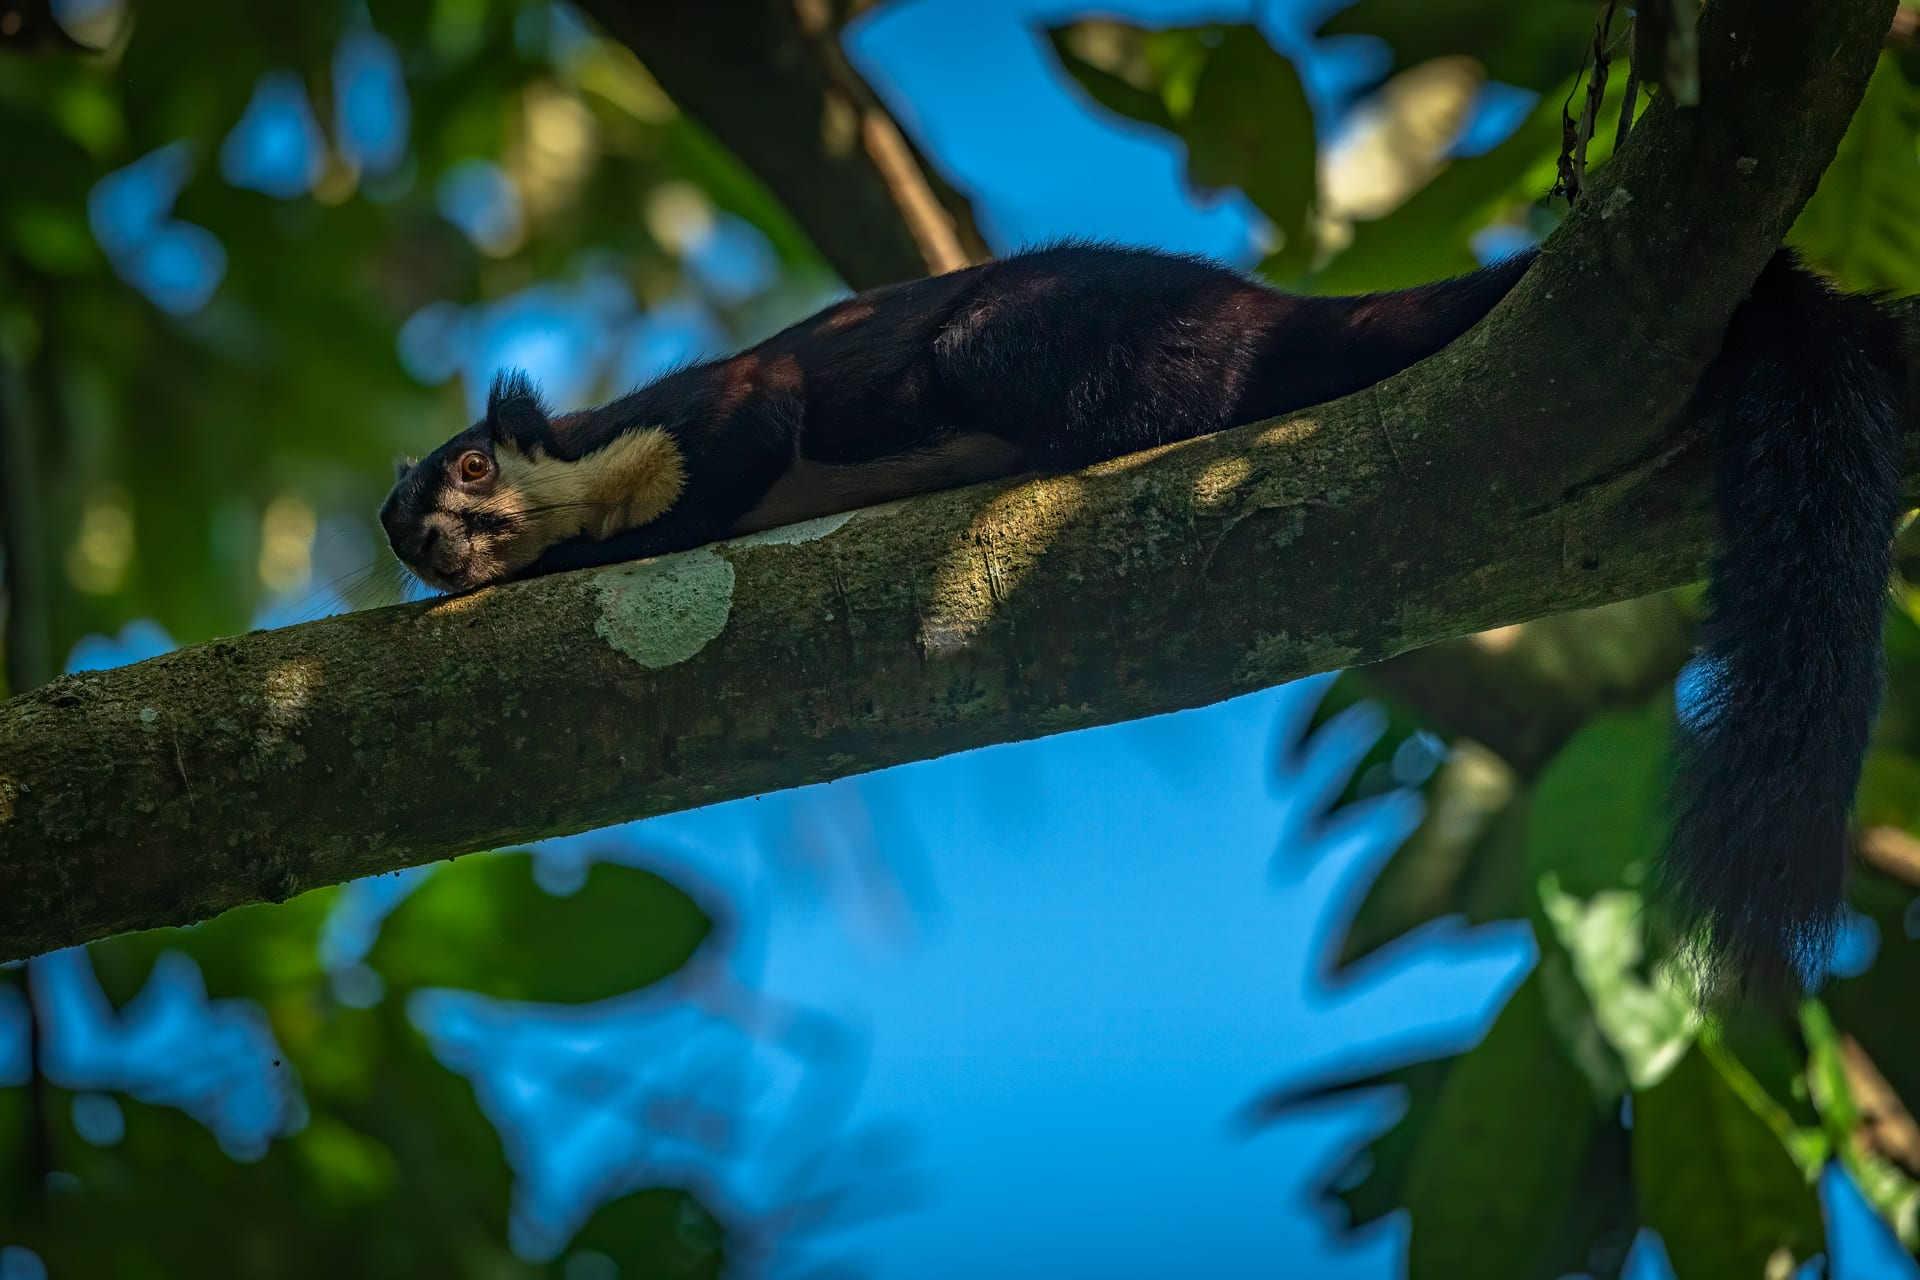 Black giant squirrels are most active during the morning and evening. They are often observed resting comfortably on a branch in the afternoon. Black and Indian giant squirrels are also known to flatten themselves against a branch and remain motionless when they spot a predator. Photo: Soumabrata Moulick